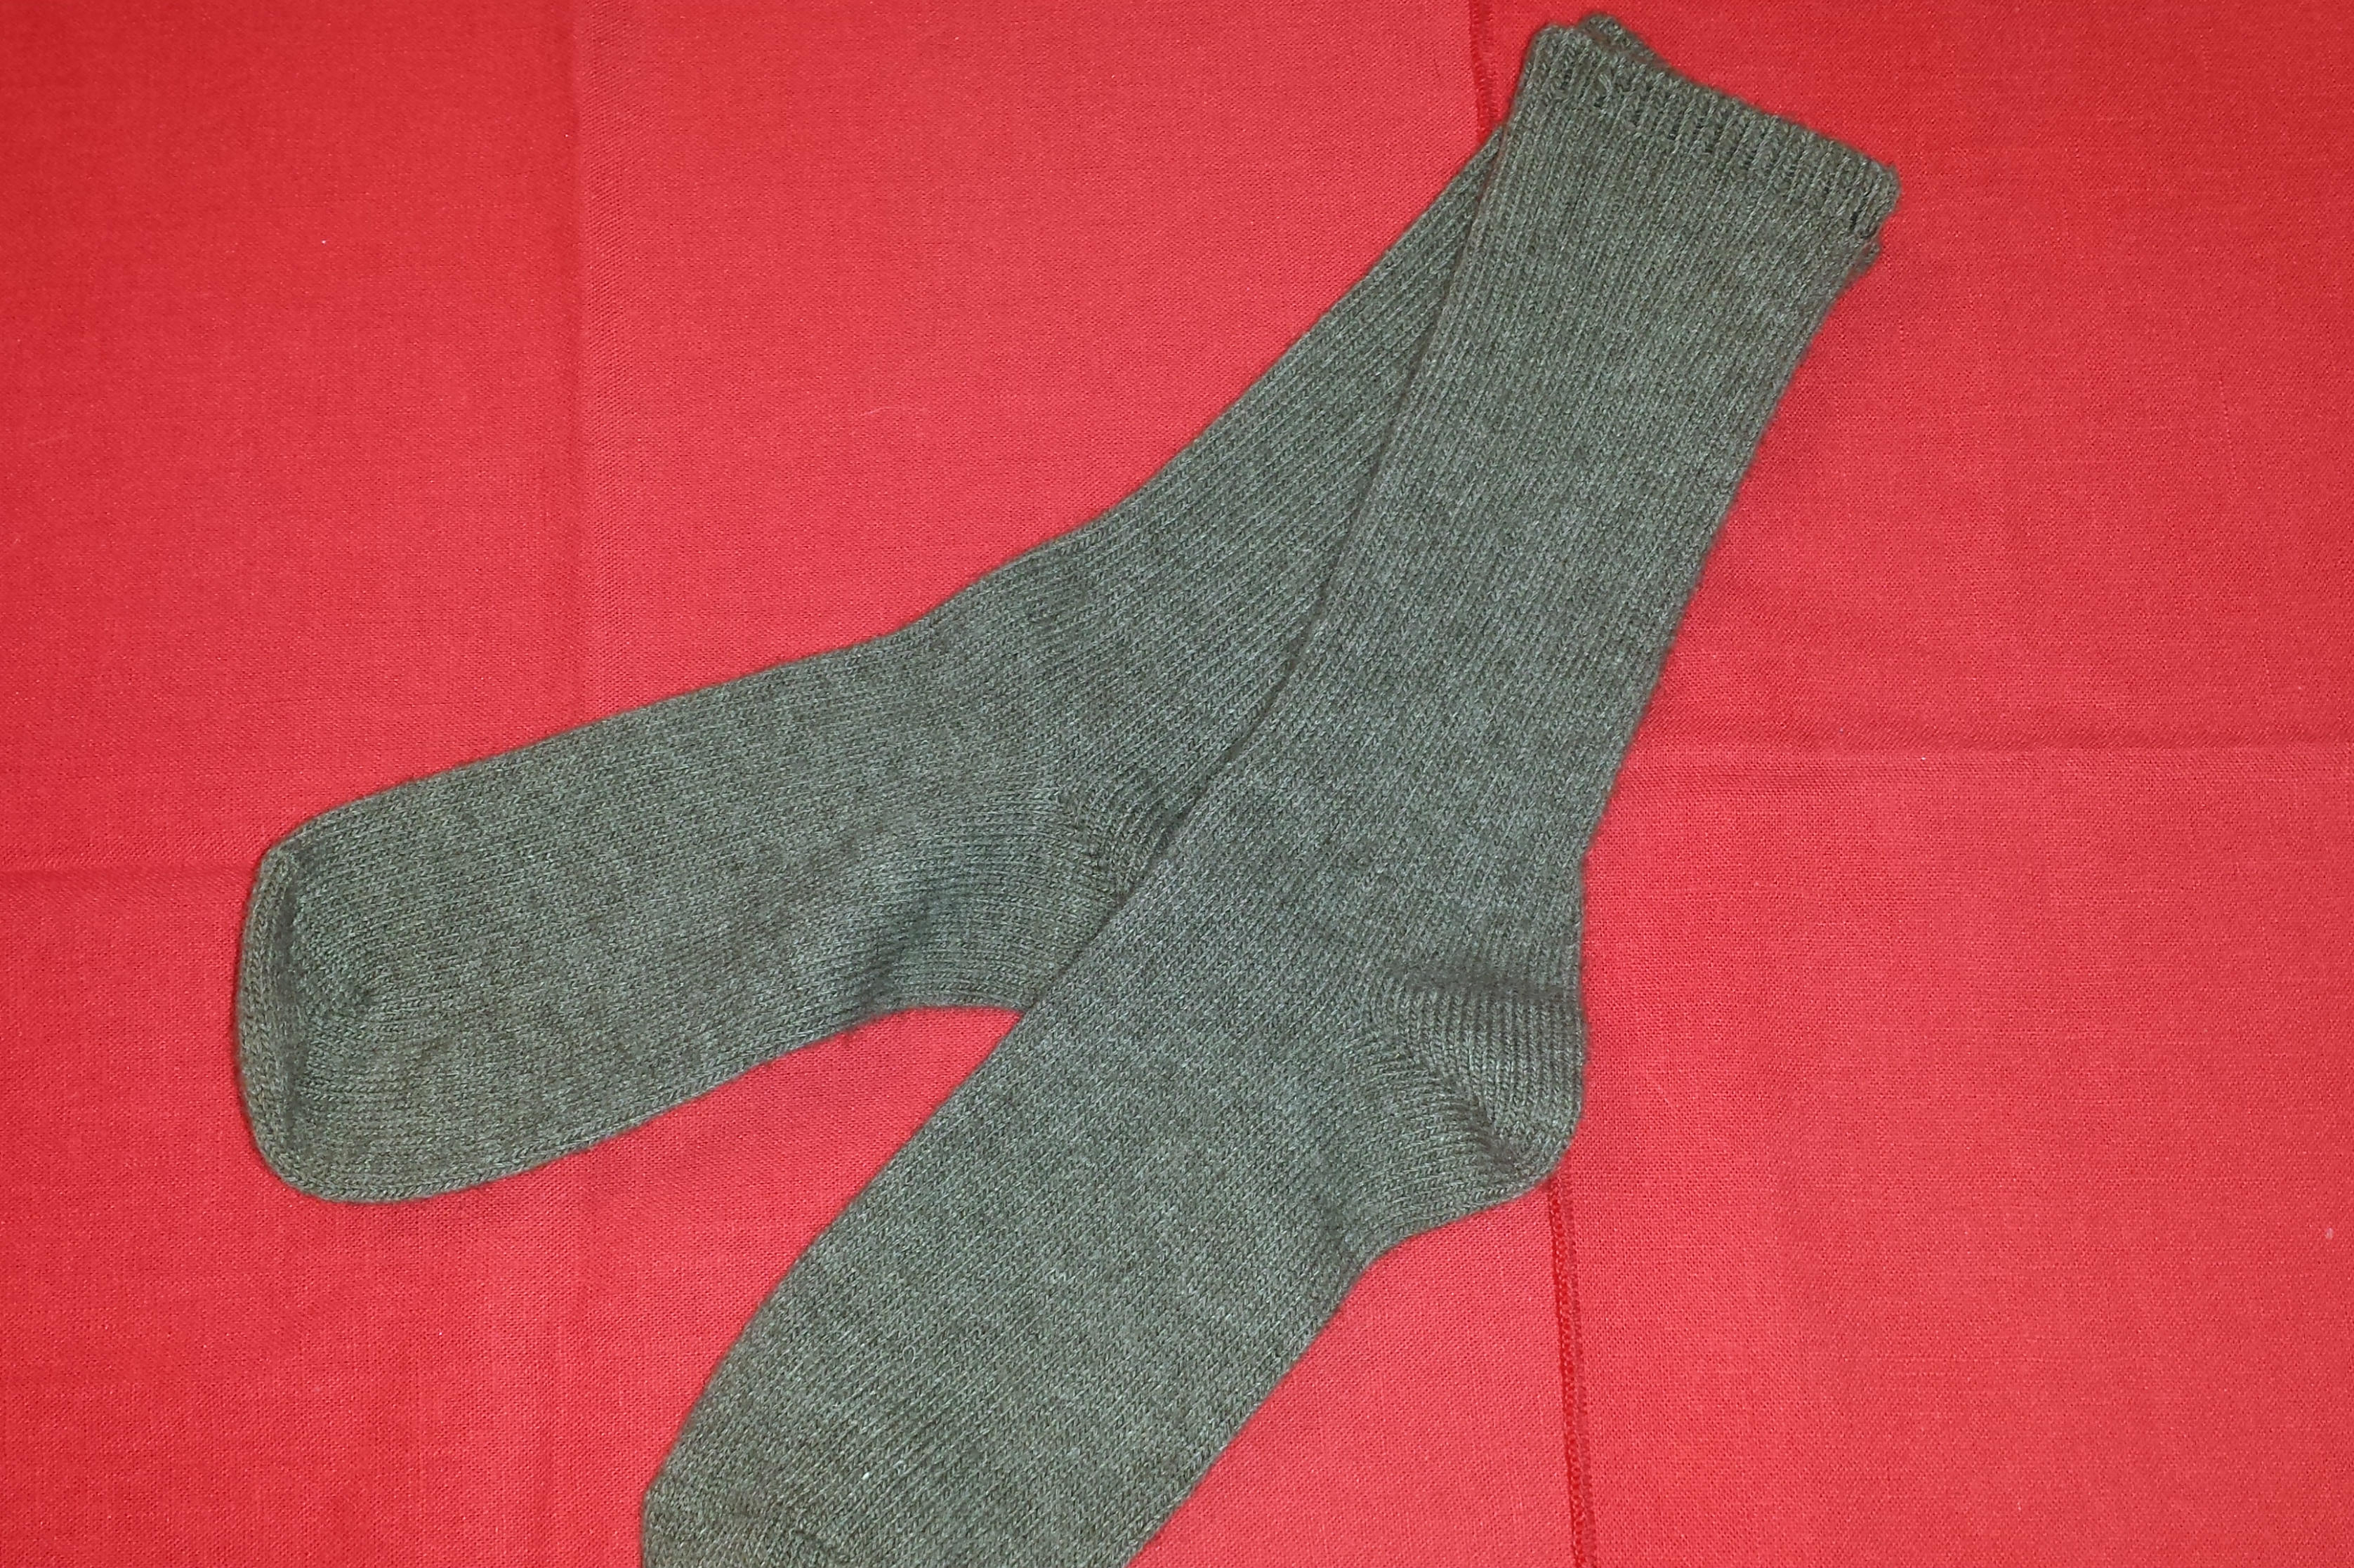 Bison, Alpaca and Musk-Ox Socks That Are Warmer Than Wool